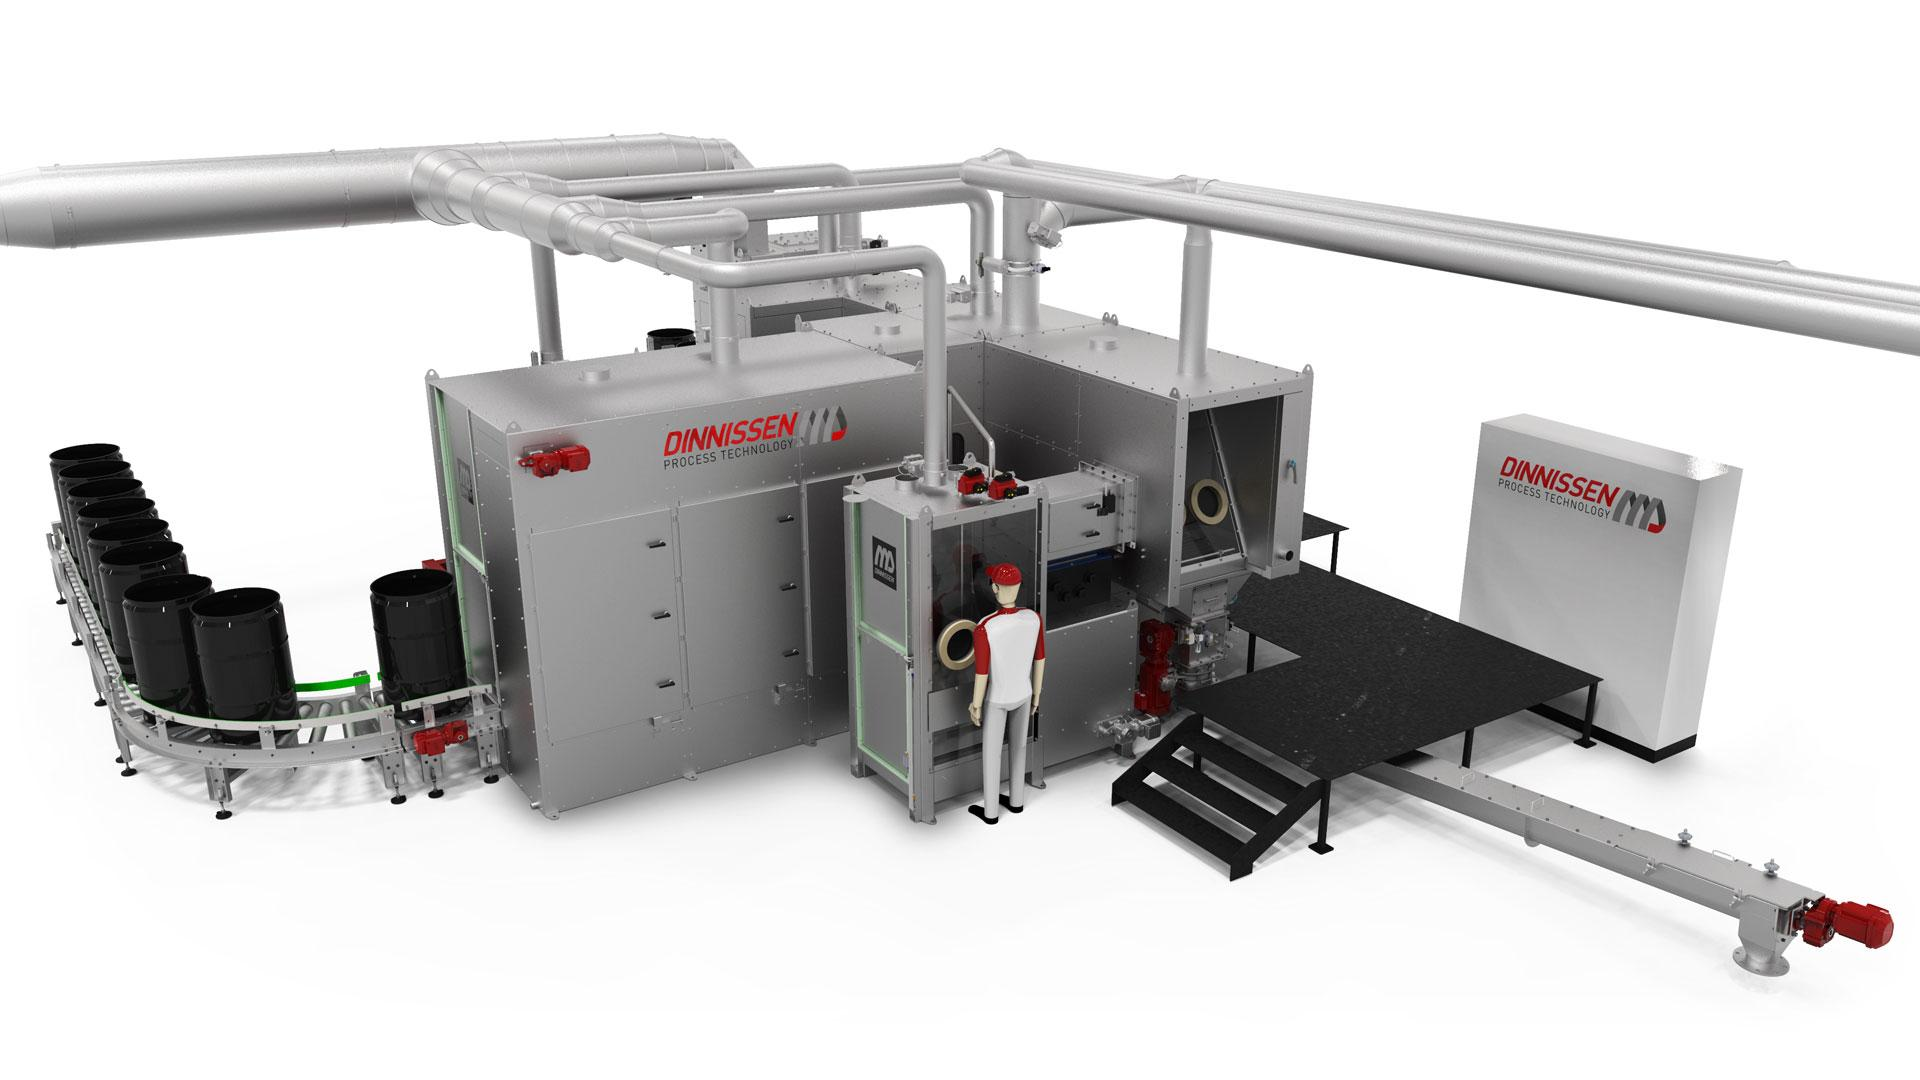 System Integration Chemicals Automatics barrel emptying